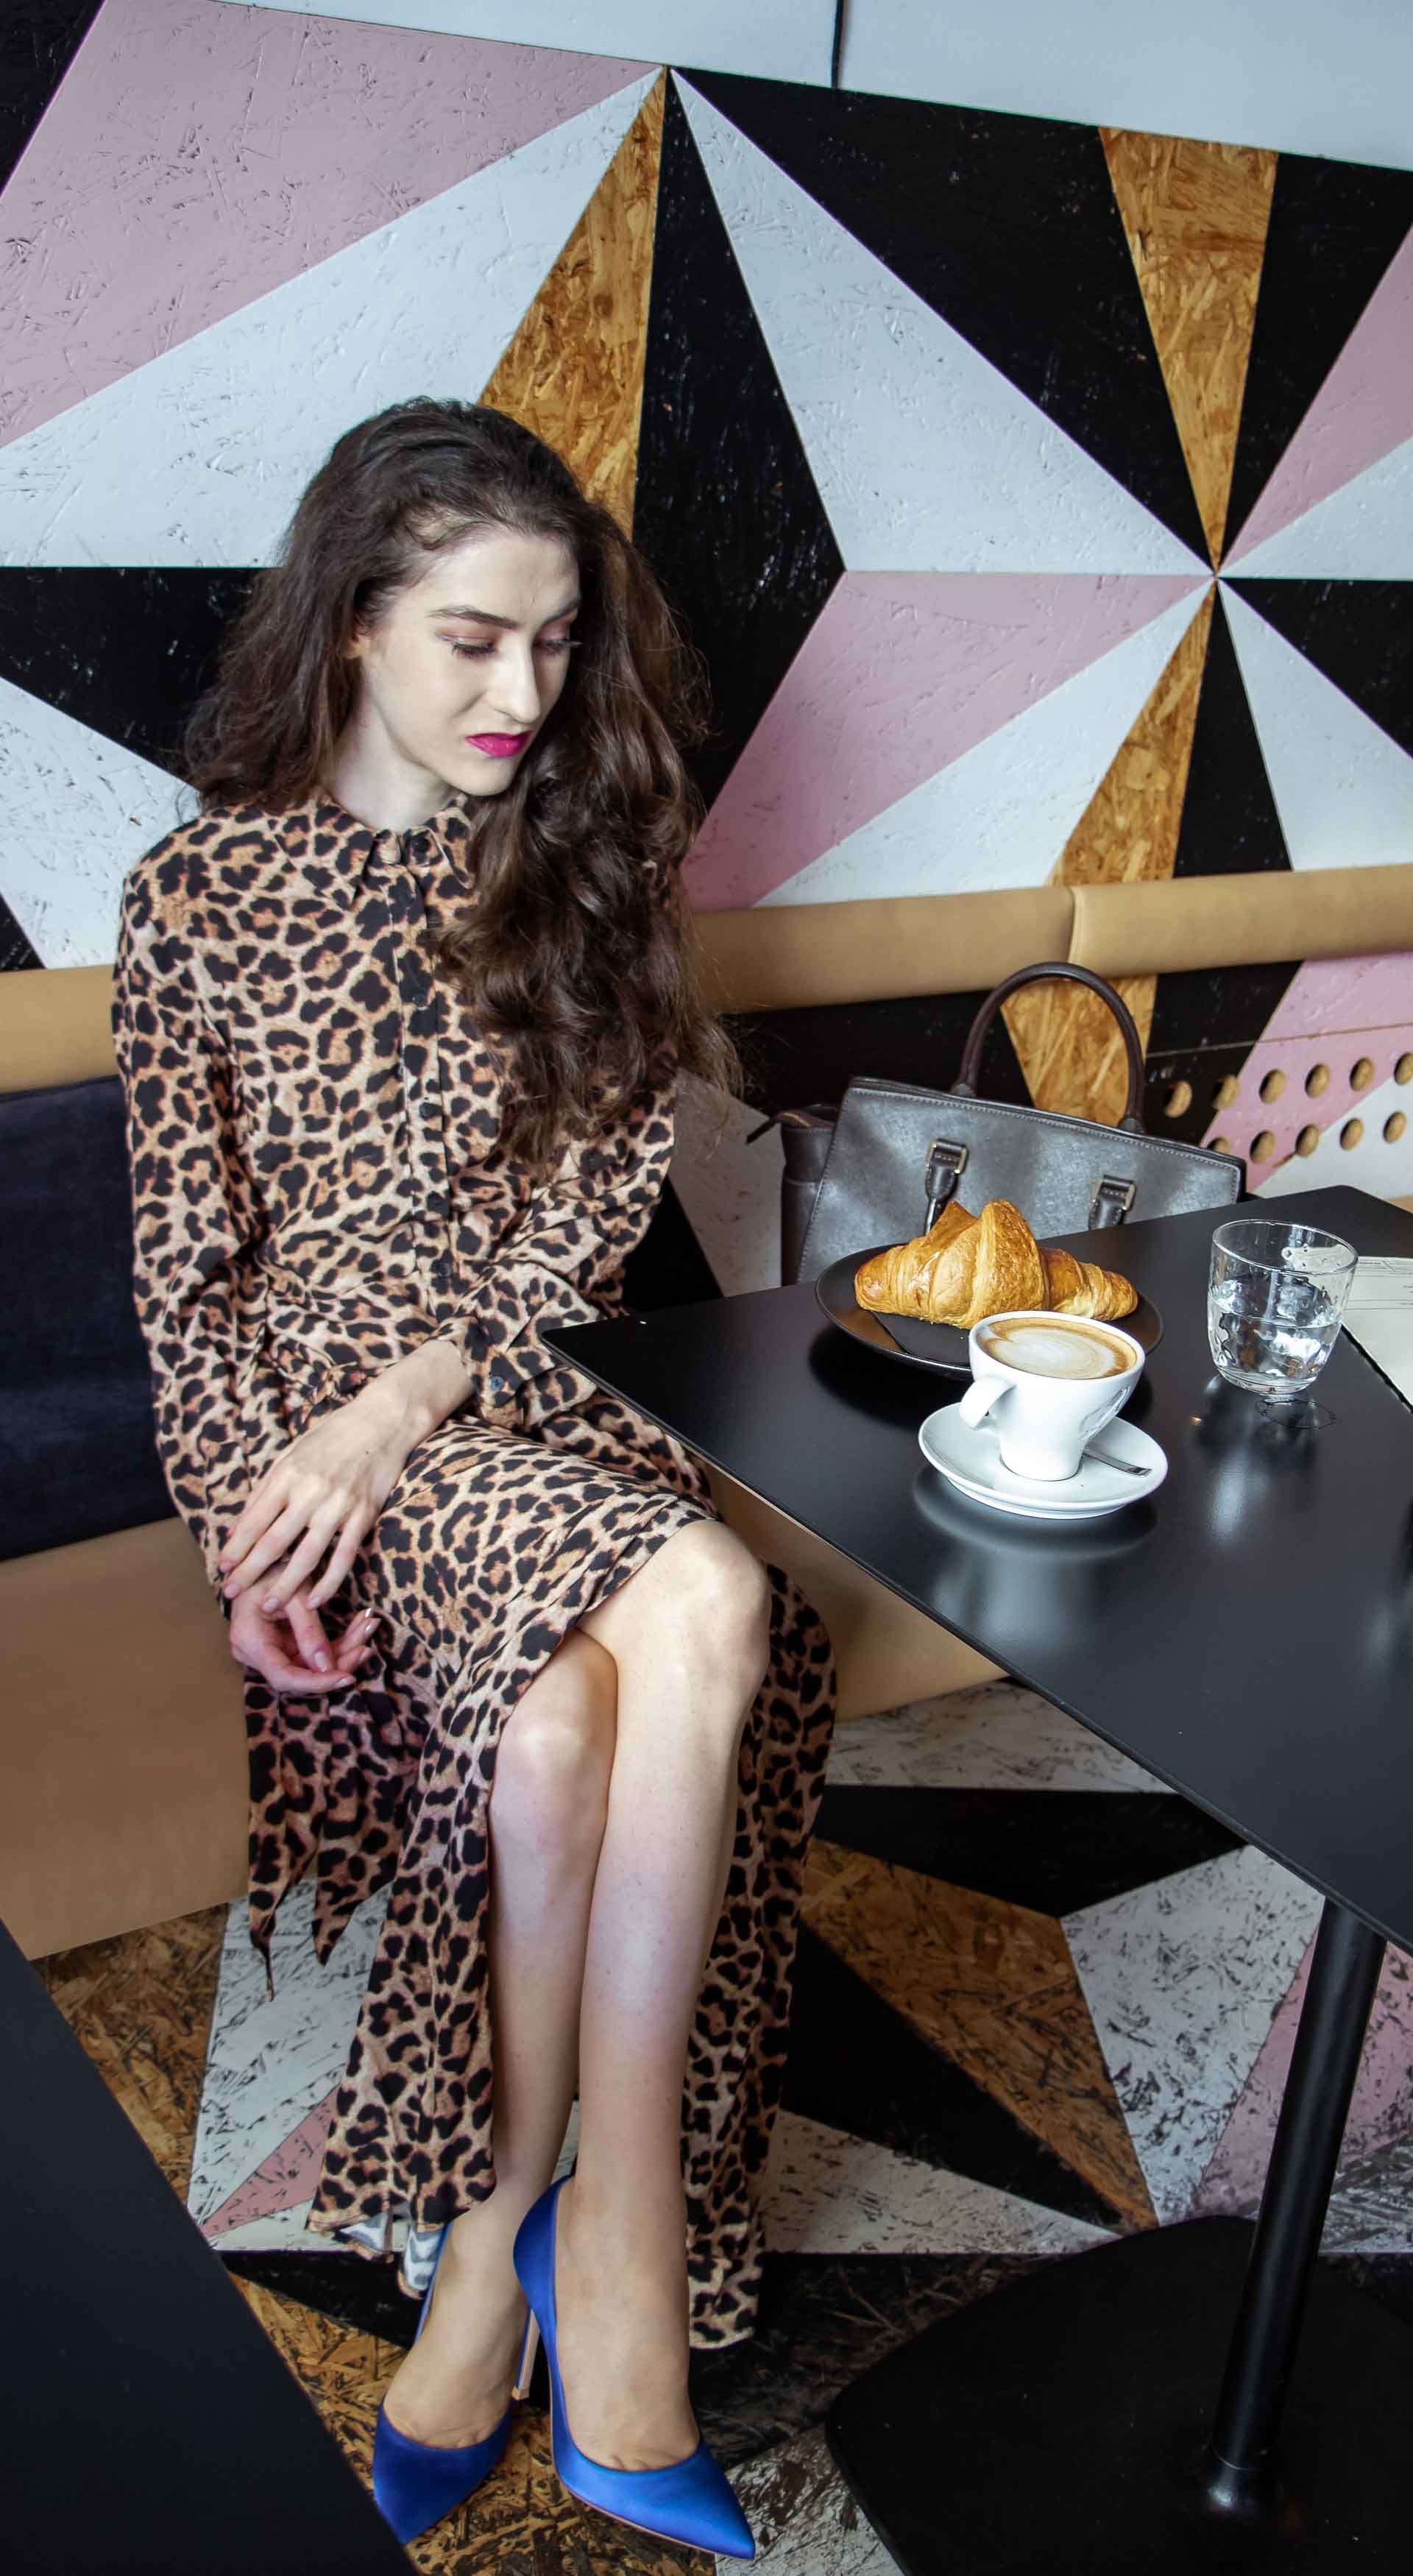 shoes to wear with animal print dress